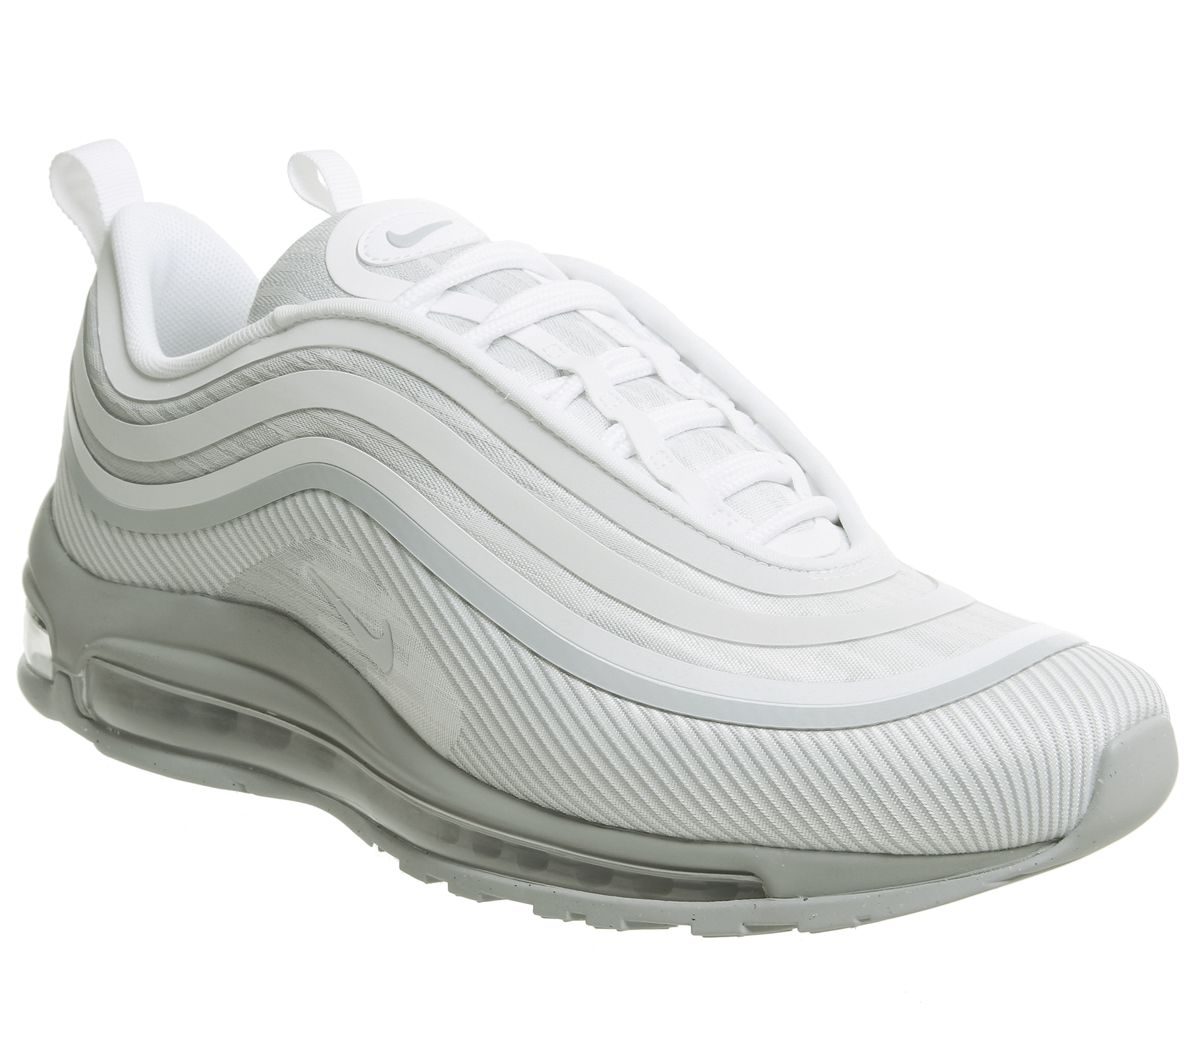 official photos 7ed28 21ae9 Air Max 97 Ul